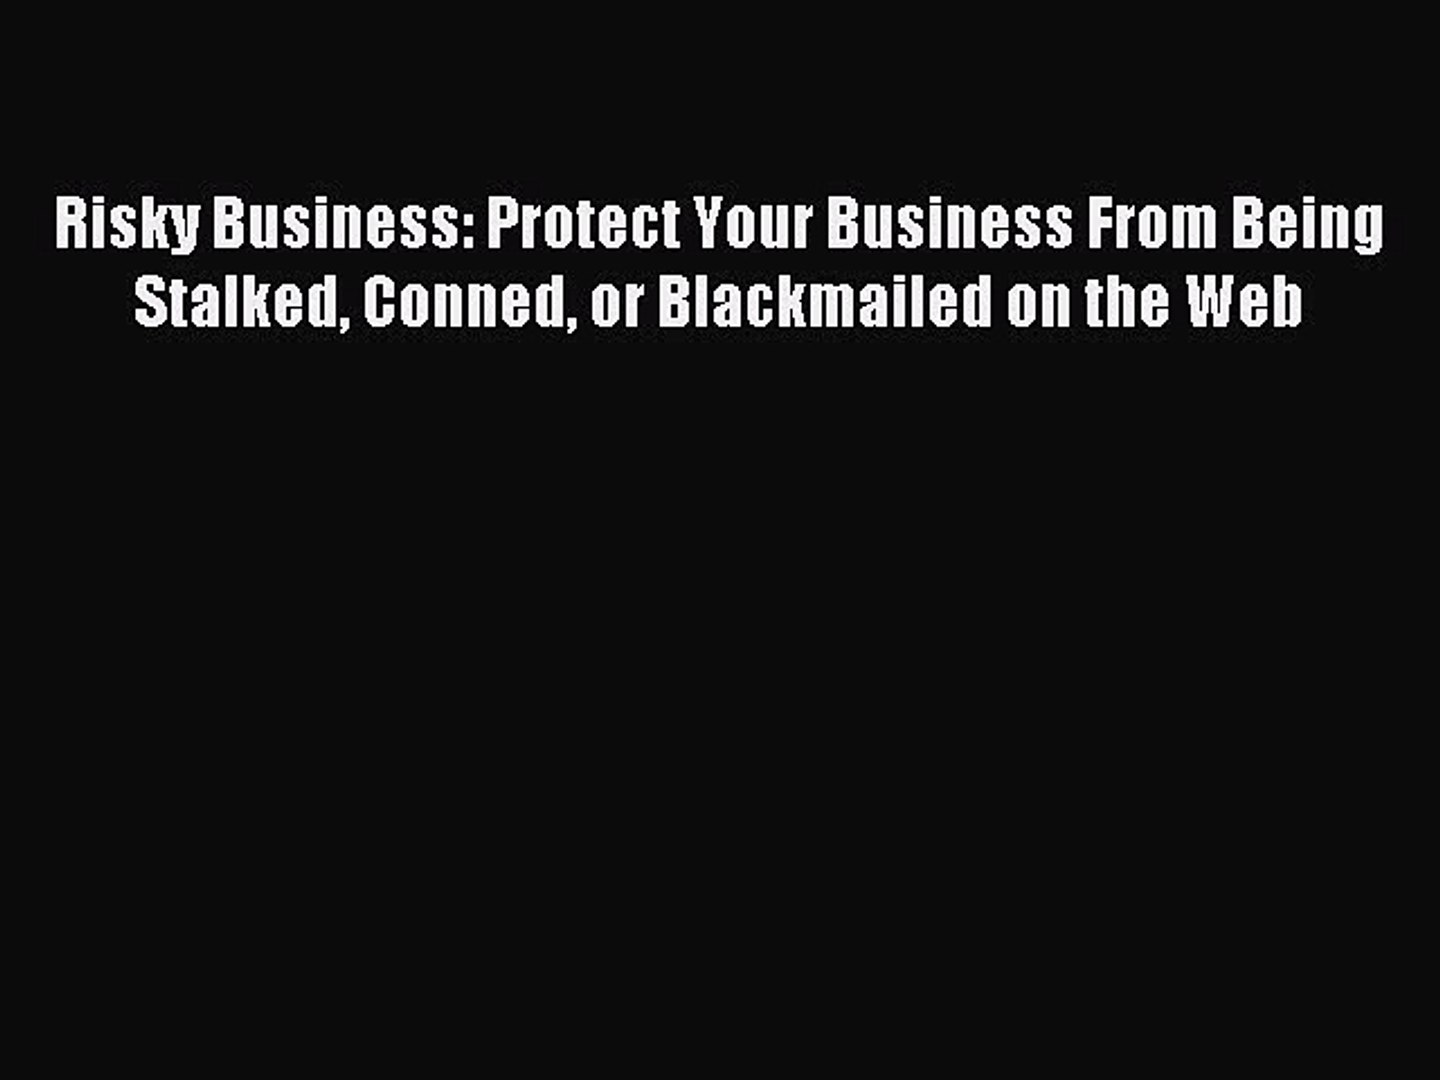 [PDF Download] Risky Business: Protect Your Business From Being Stalked Conned or Blackmailed